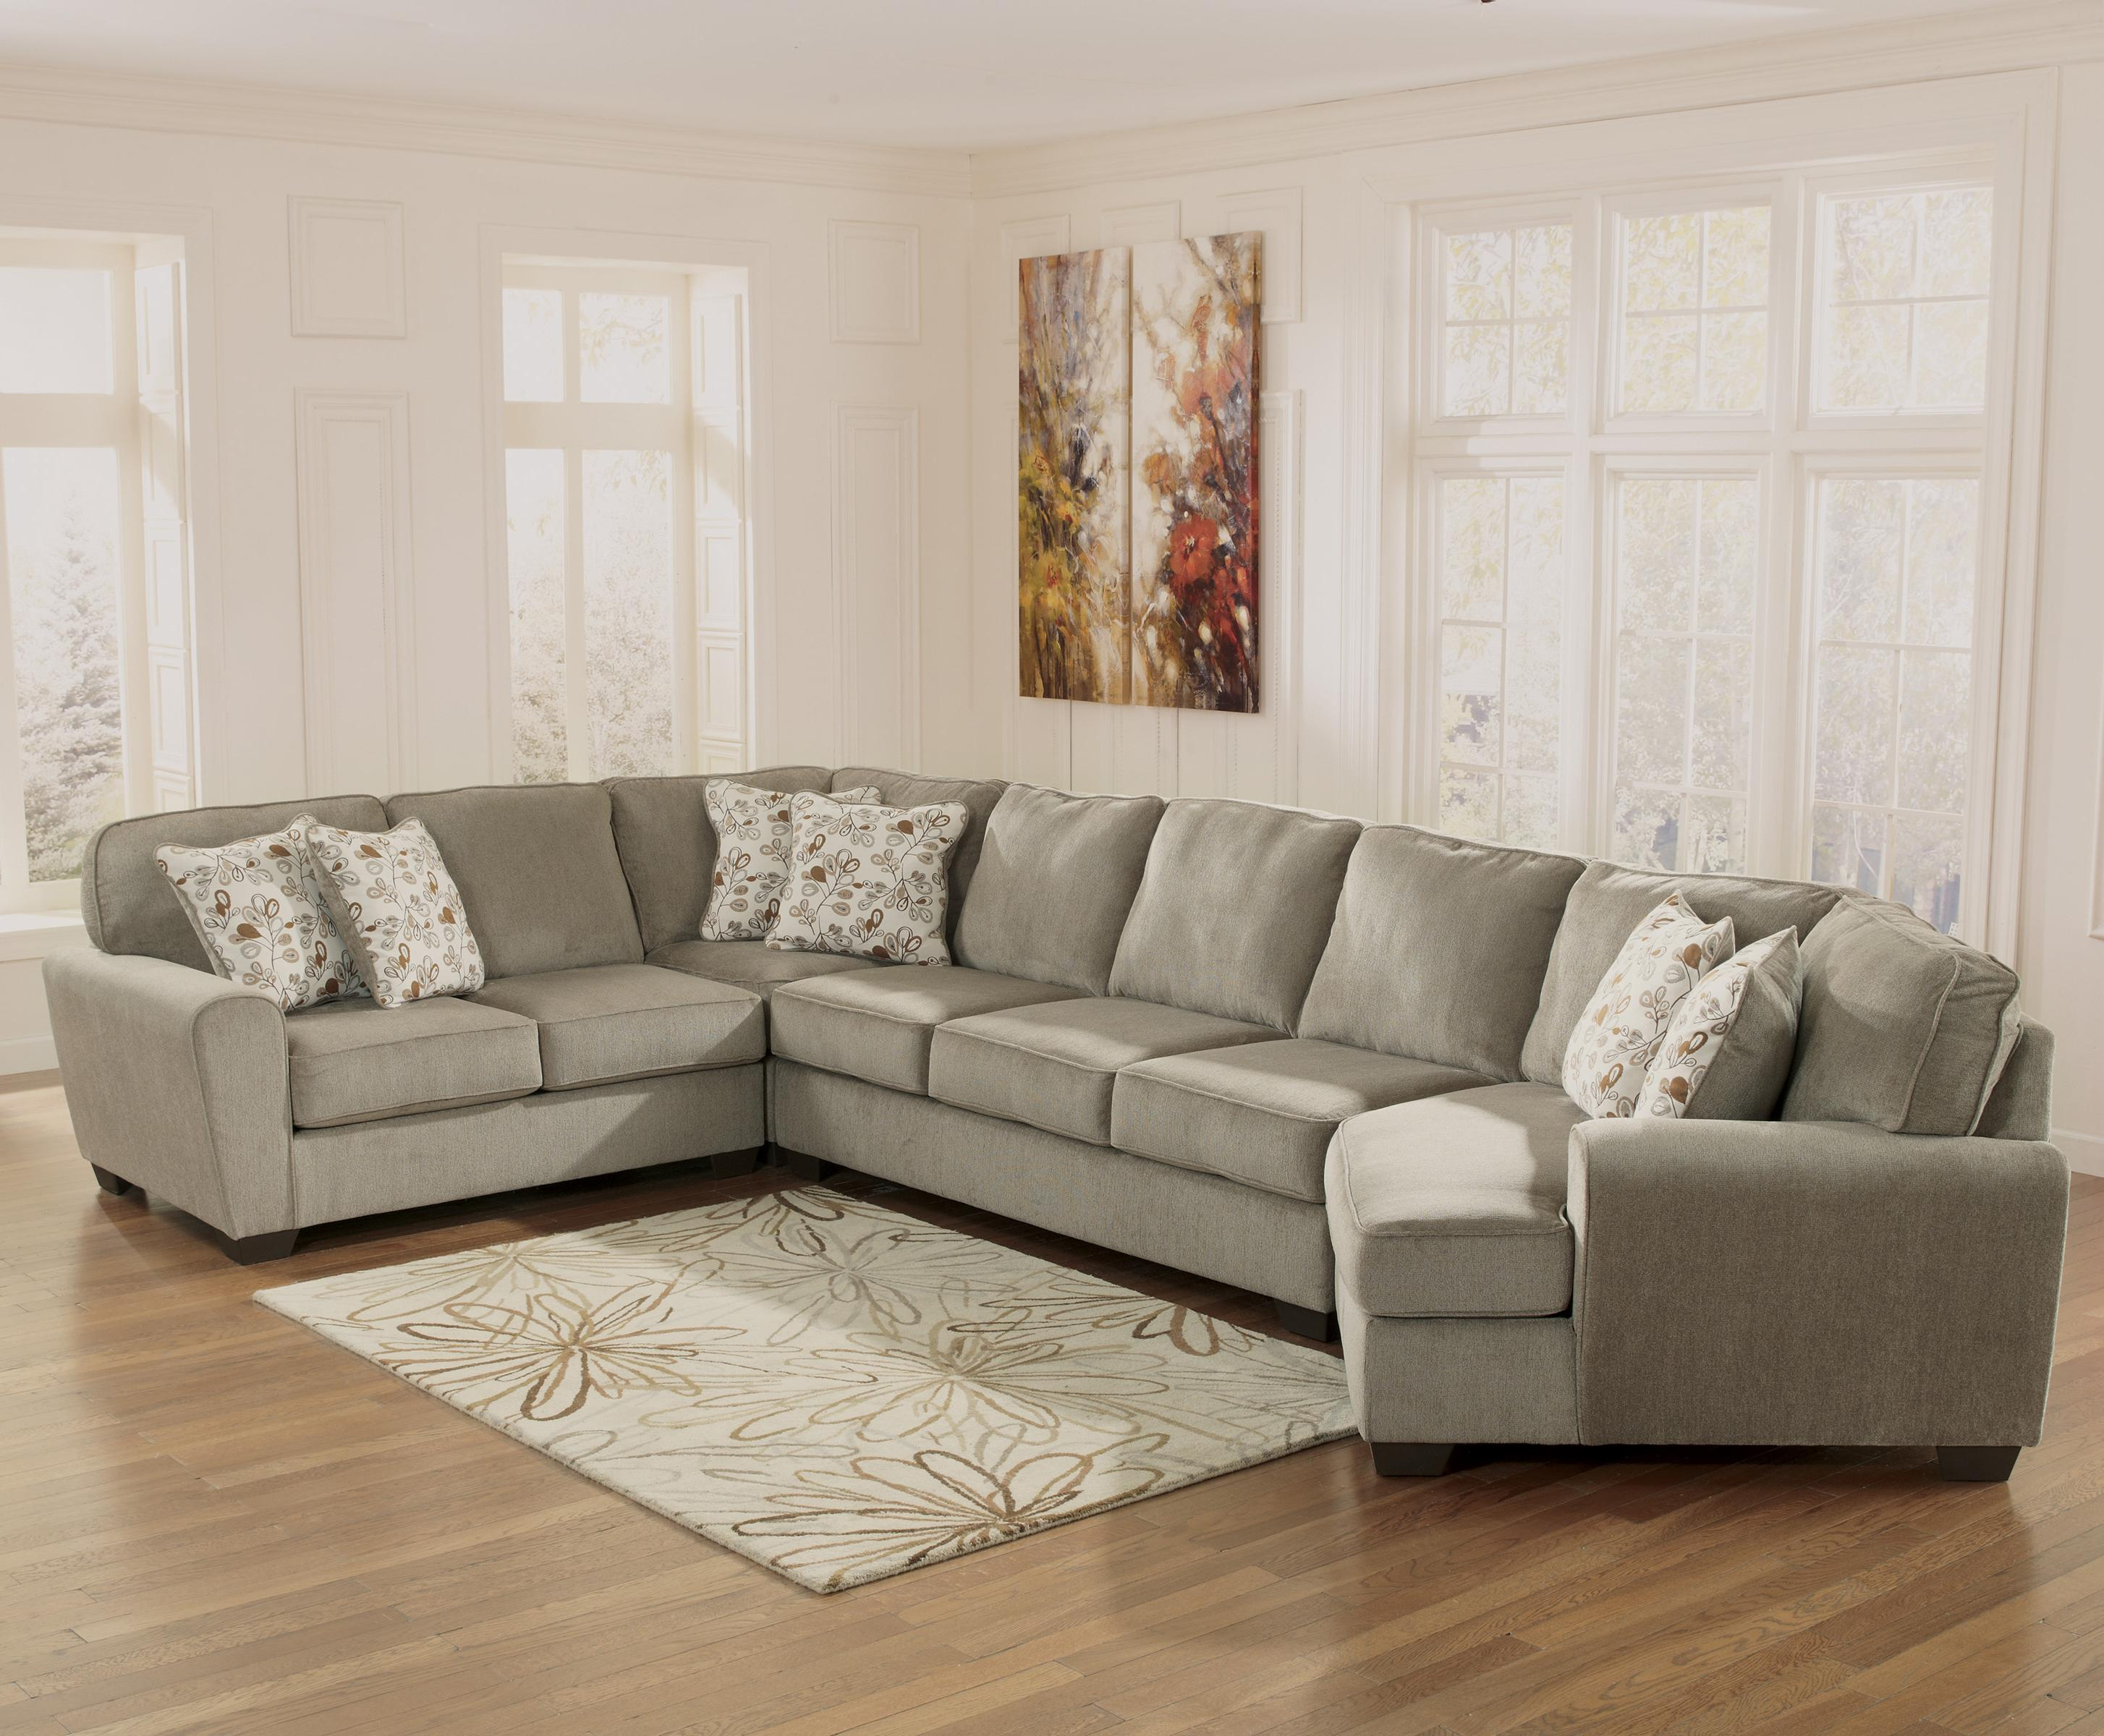 Patola Park - Patina 4-Piece Sectional with Right Cuddler by Ashley Furniture at Lapeer Furniture & Mattress Center